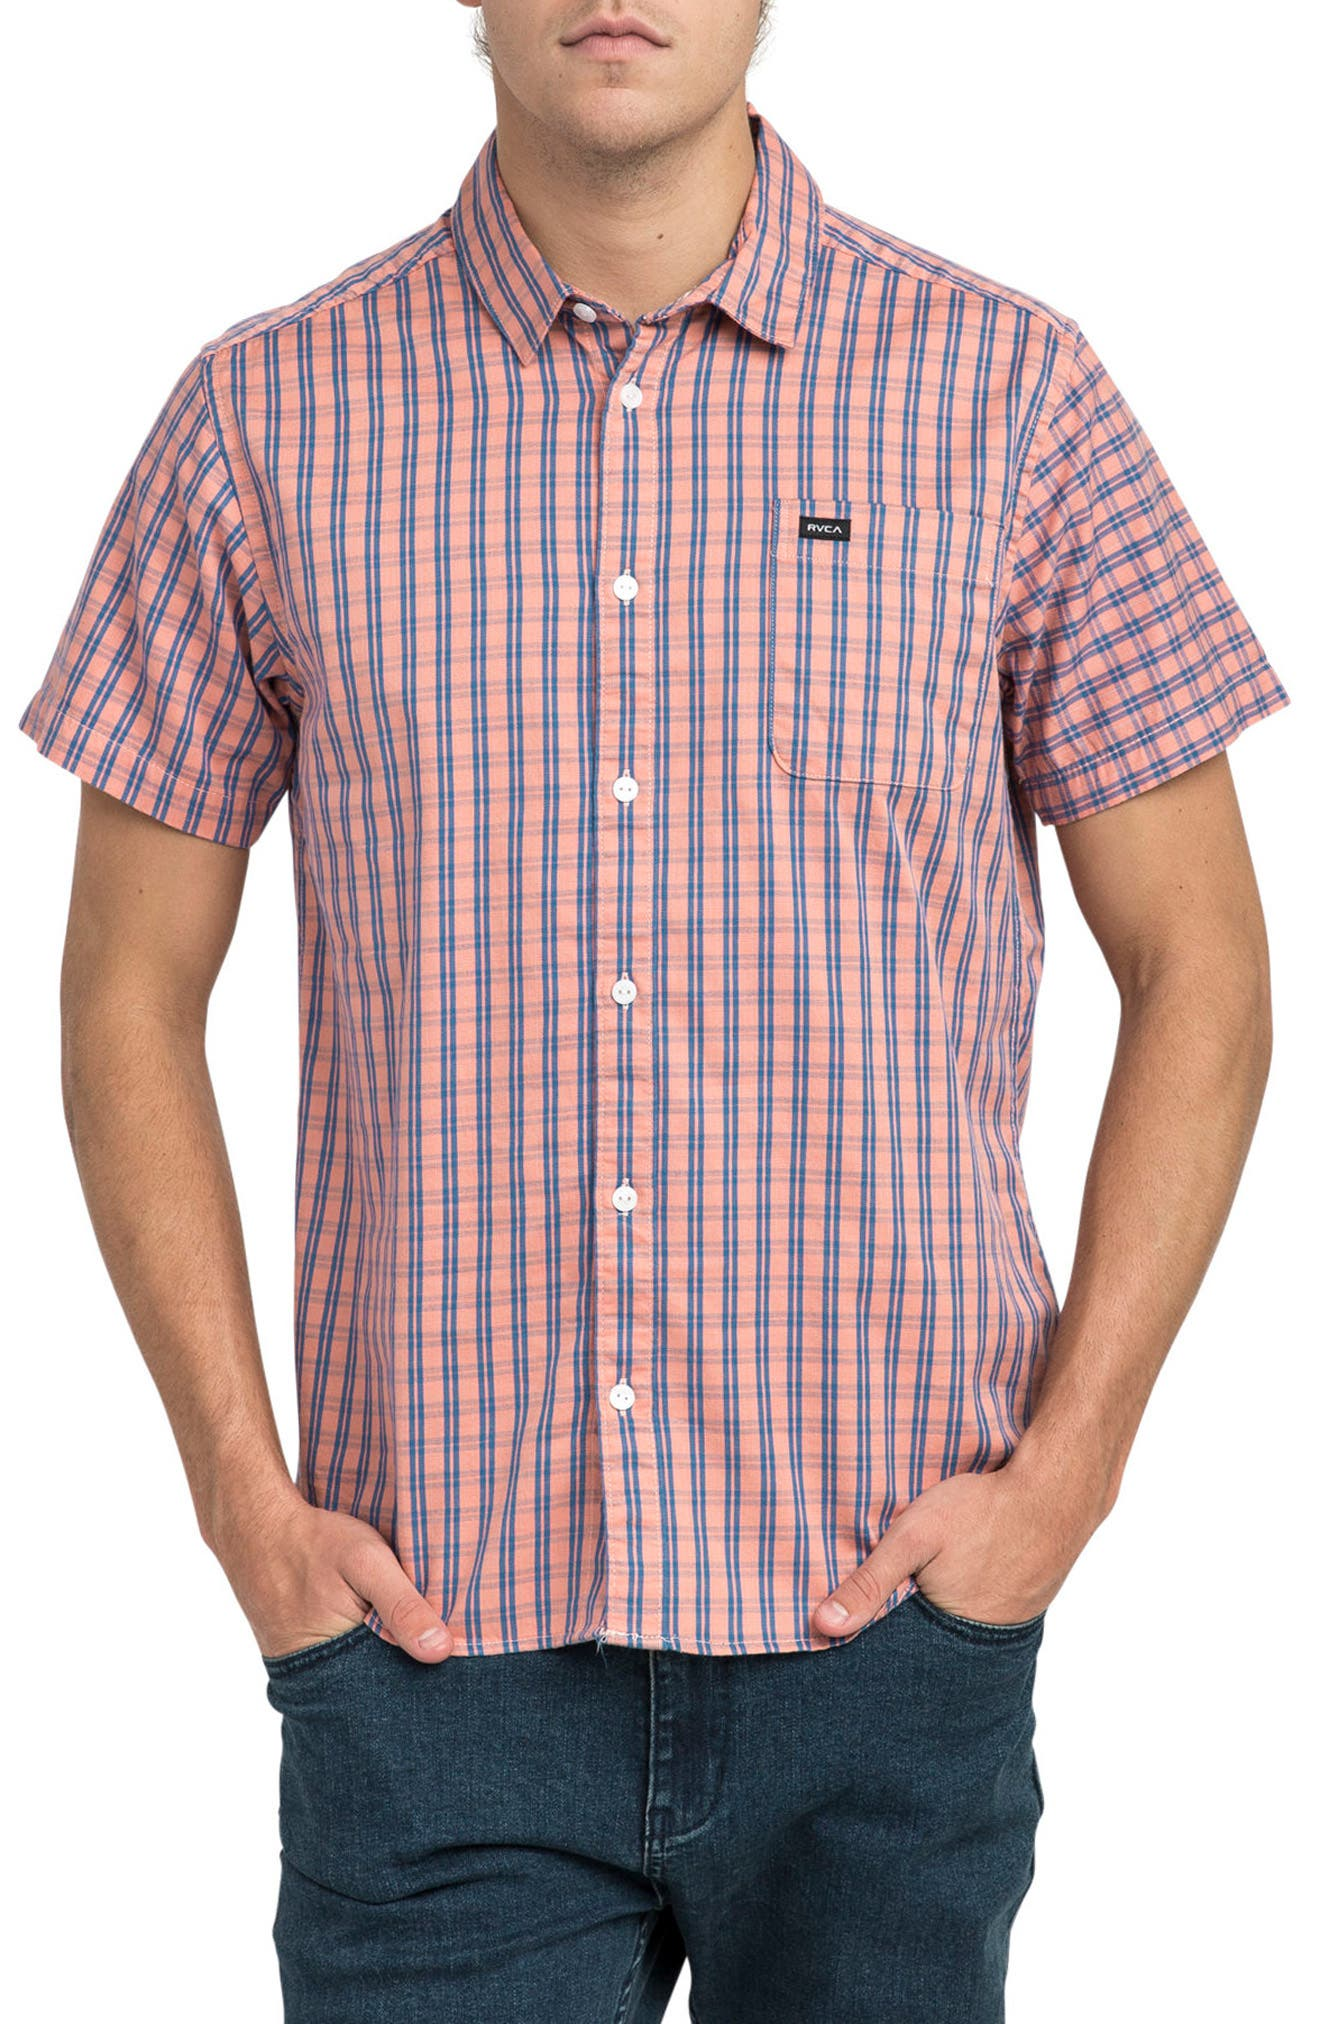 Delivery Woven Shirt,                         Main,                         color, 200